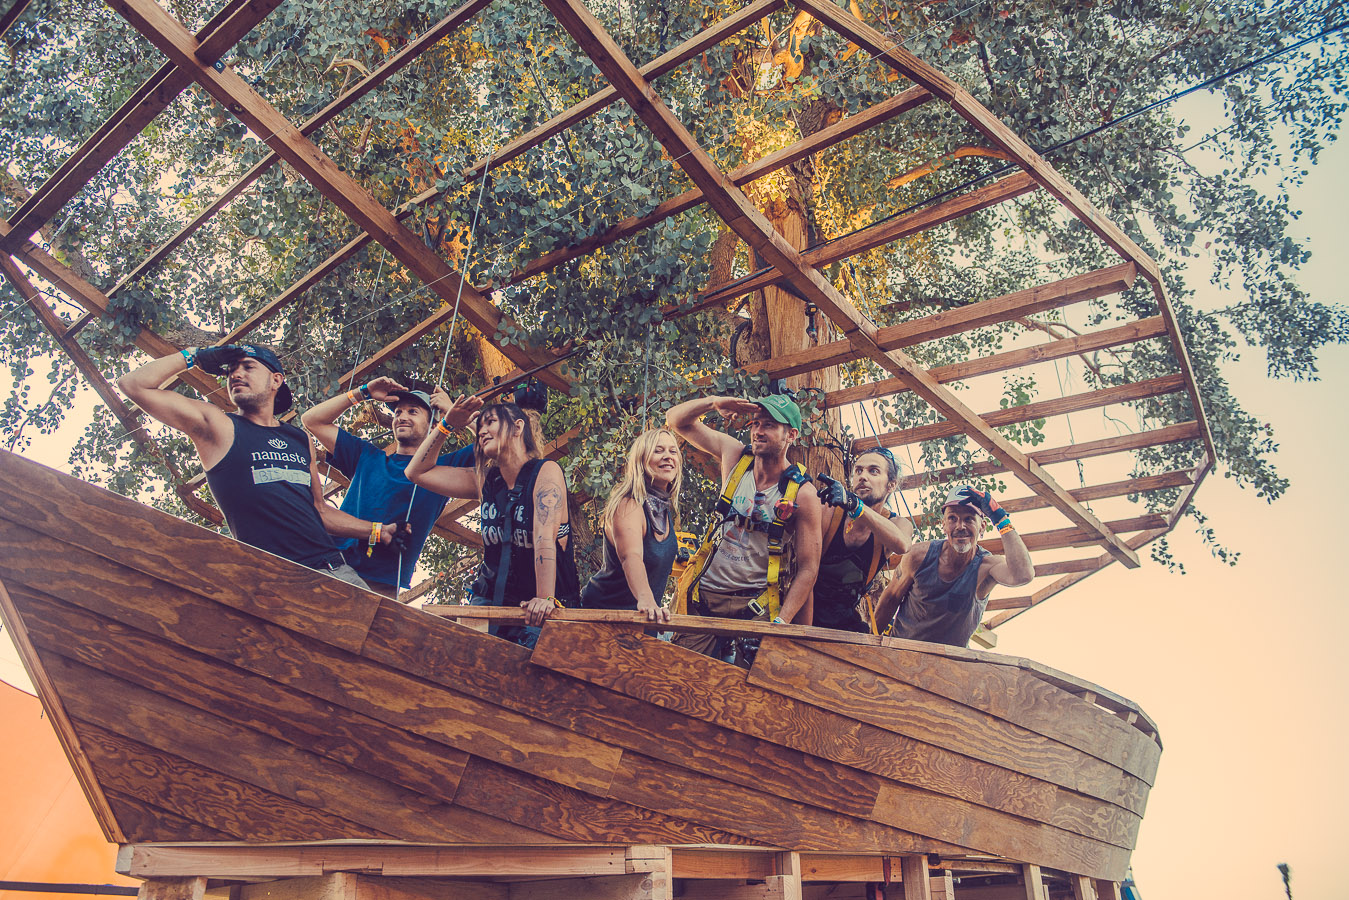 coachella-2015-dolab-tree-house-hunter-leggitt-studio-1.jpg